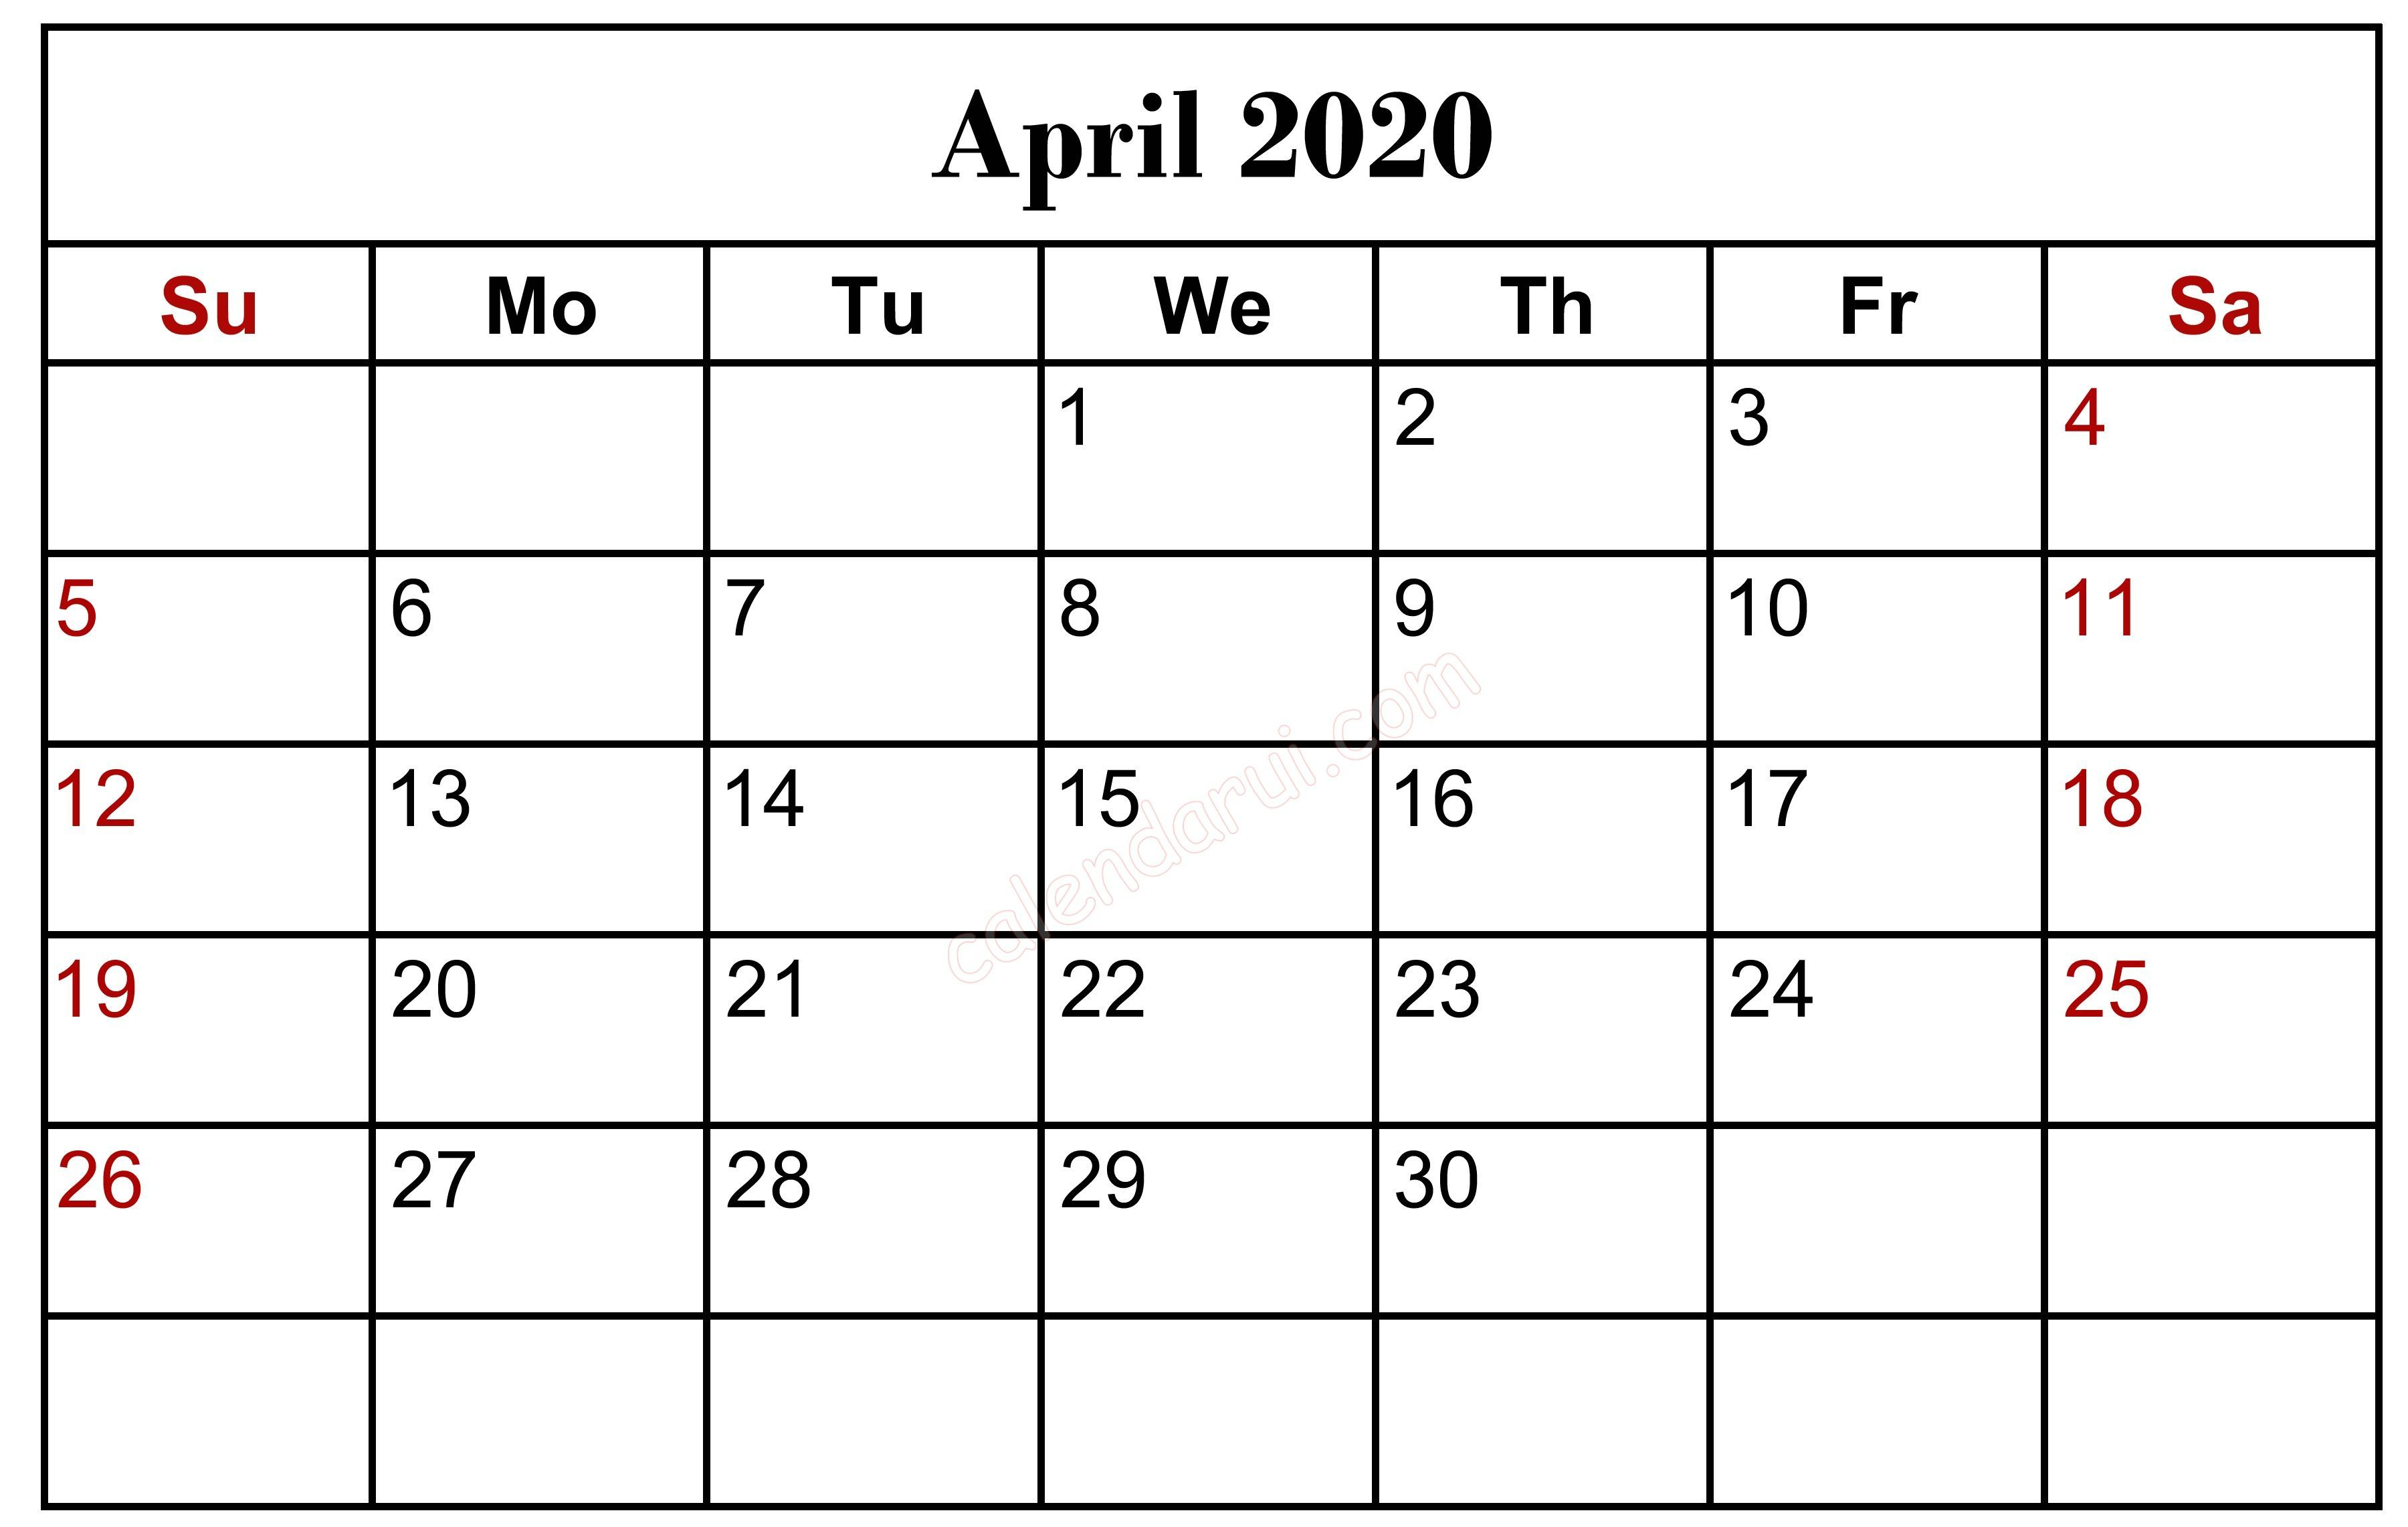 April 2020 Calendar With Holidays US